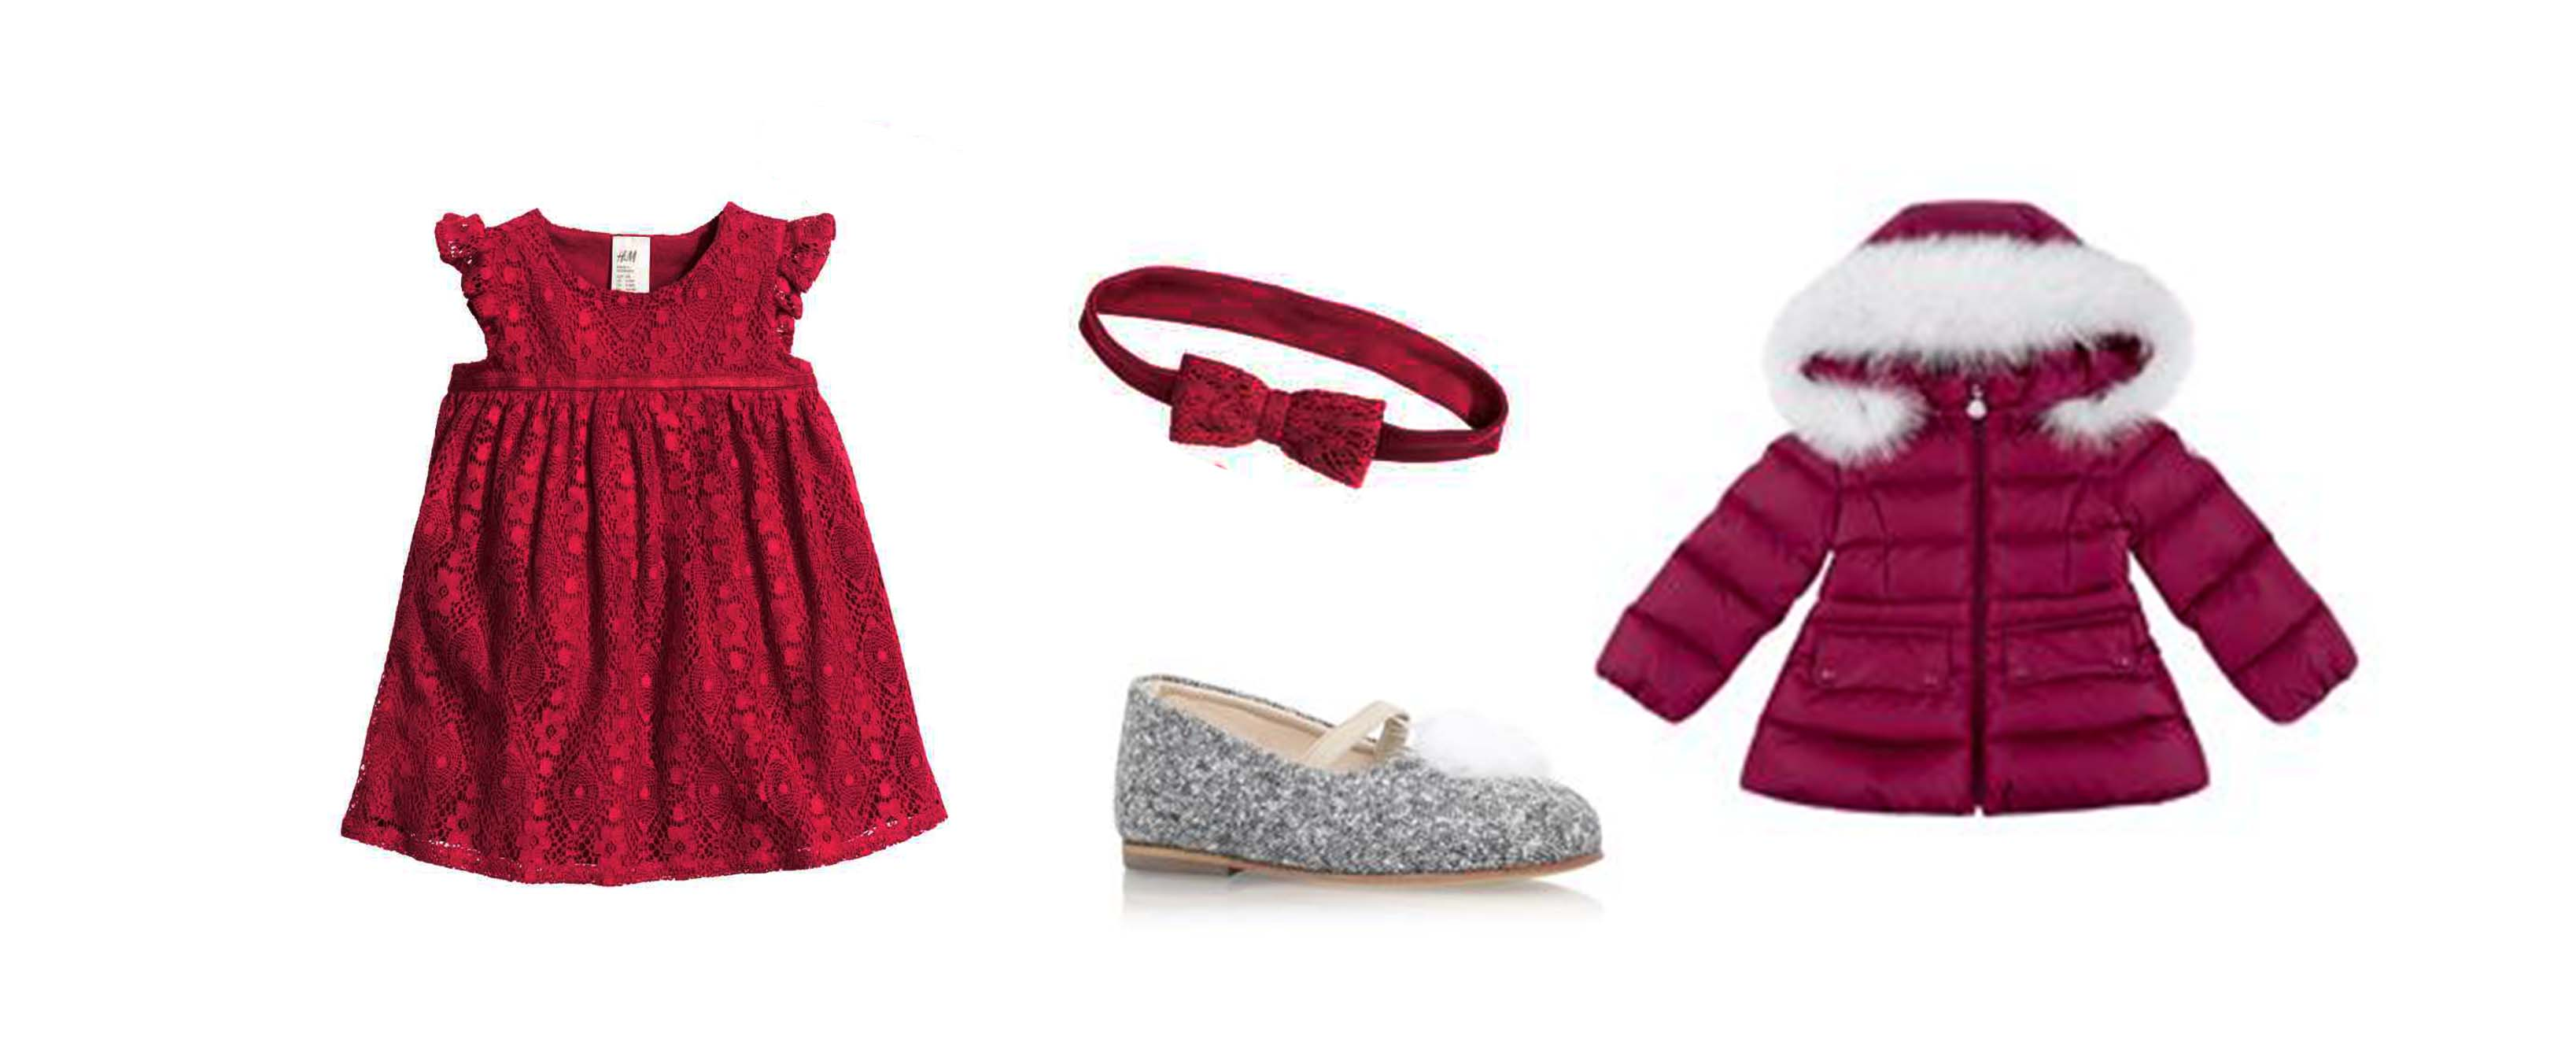 HOW TO DRESS YOUR BABY FOR CHRISTMAS